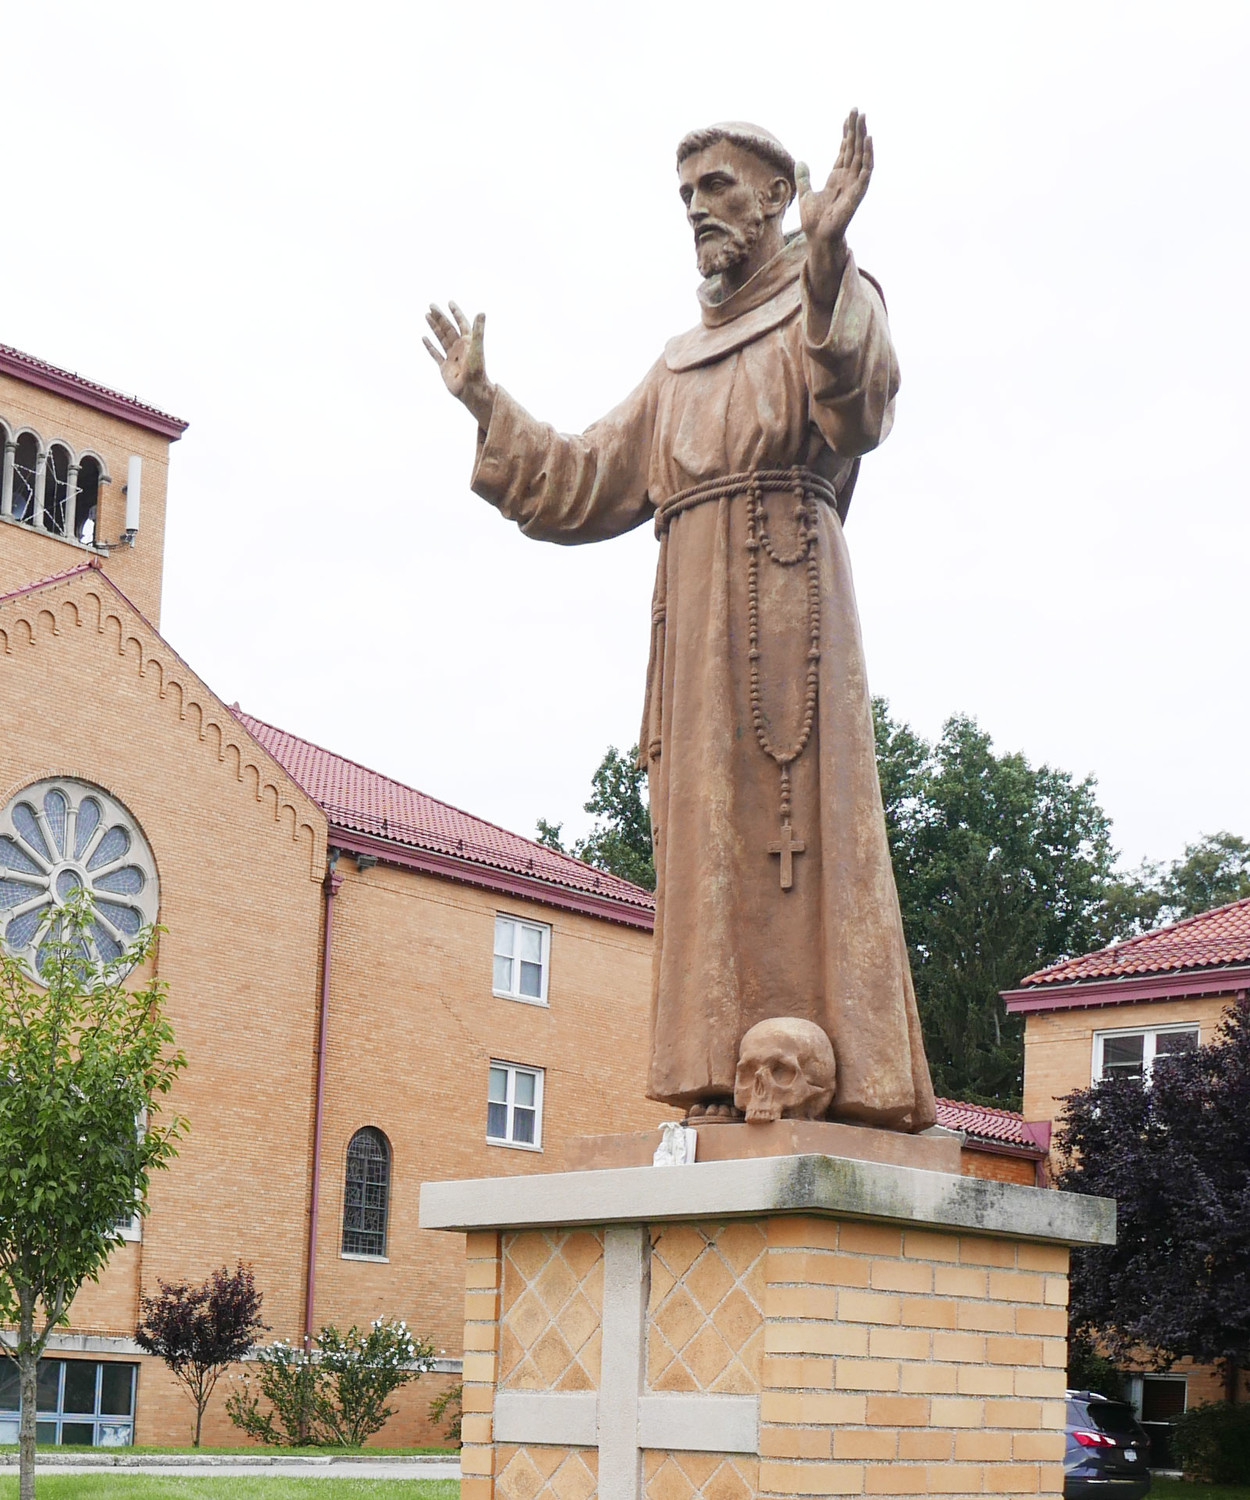 A statue of St. Francis of Assisi is located in a garden that was dedicated in 1992 to mark the golden jubilee of the priesthood of Father Thomas More Nicastro, O.F.M.